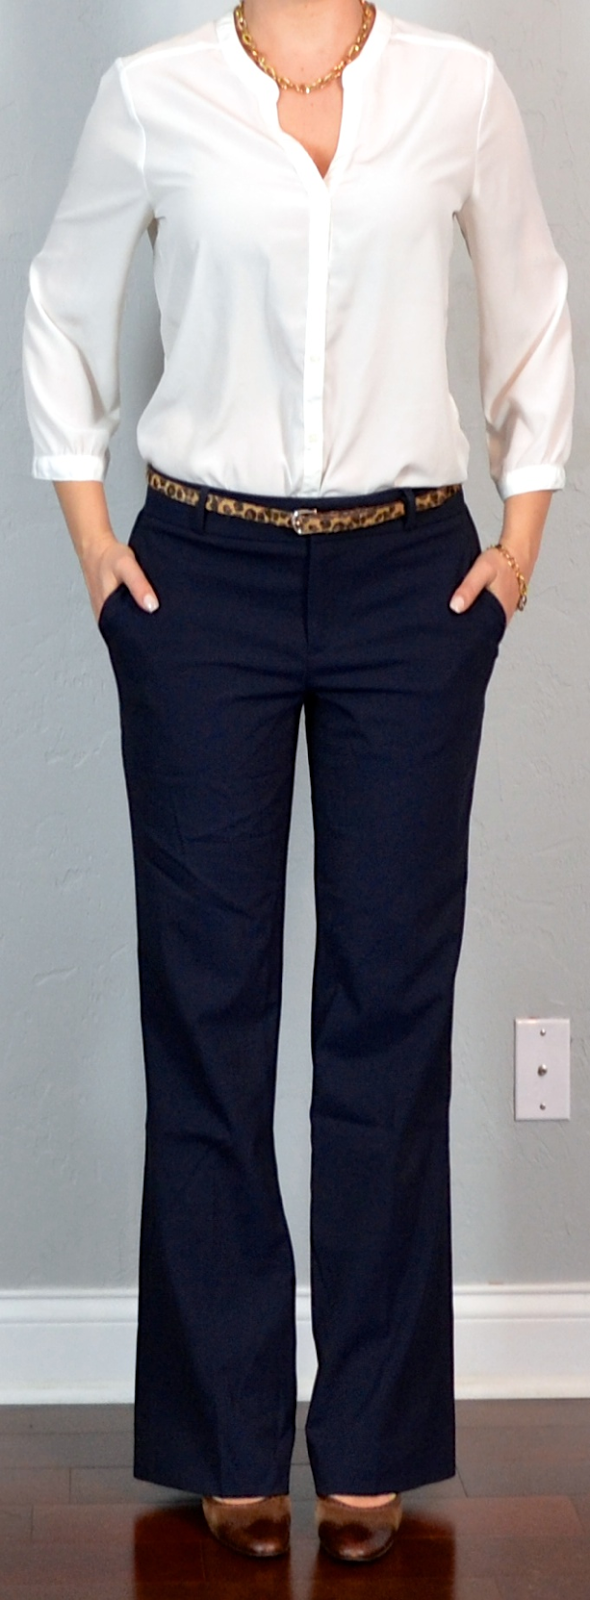 Wonderful Women39s Skinny Pants Suit Pants Amp More  Women39s Pants  JCrew